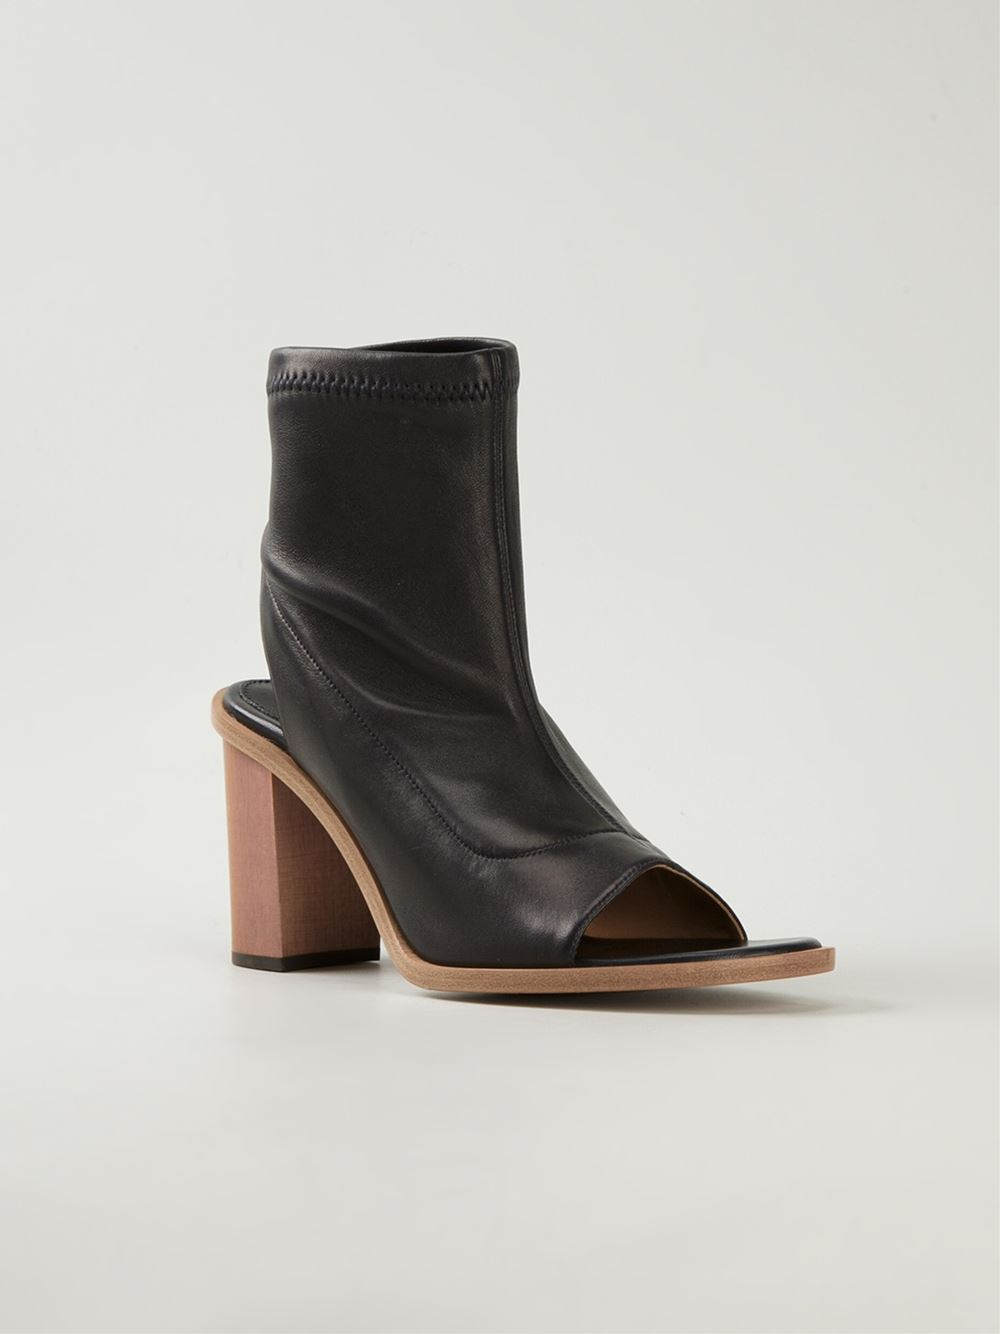 Chloé Leather Open Toe Boots BgRaUWm